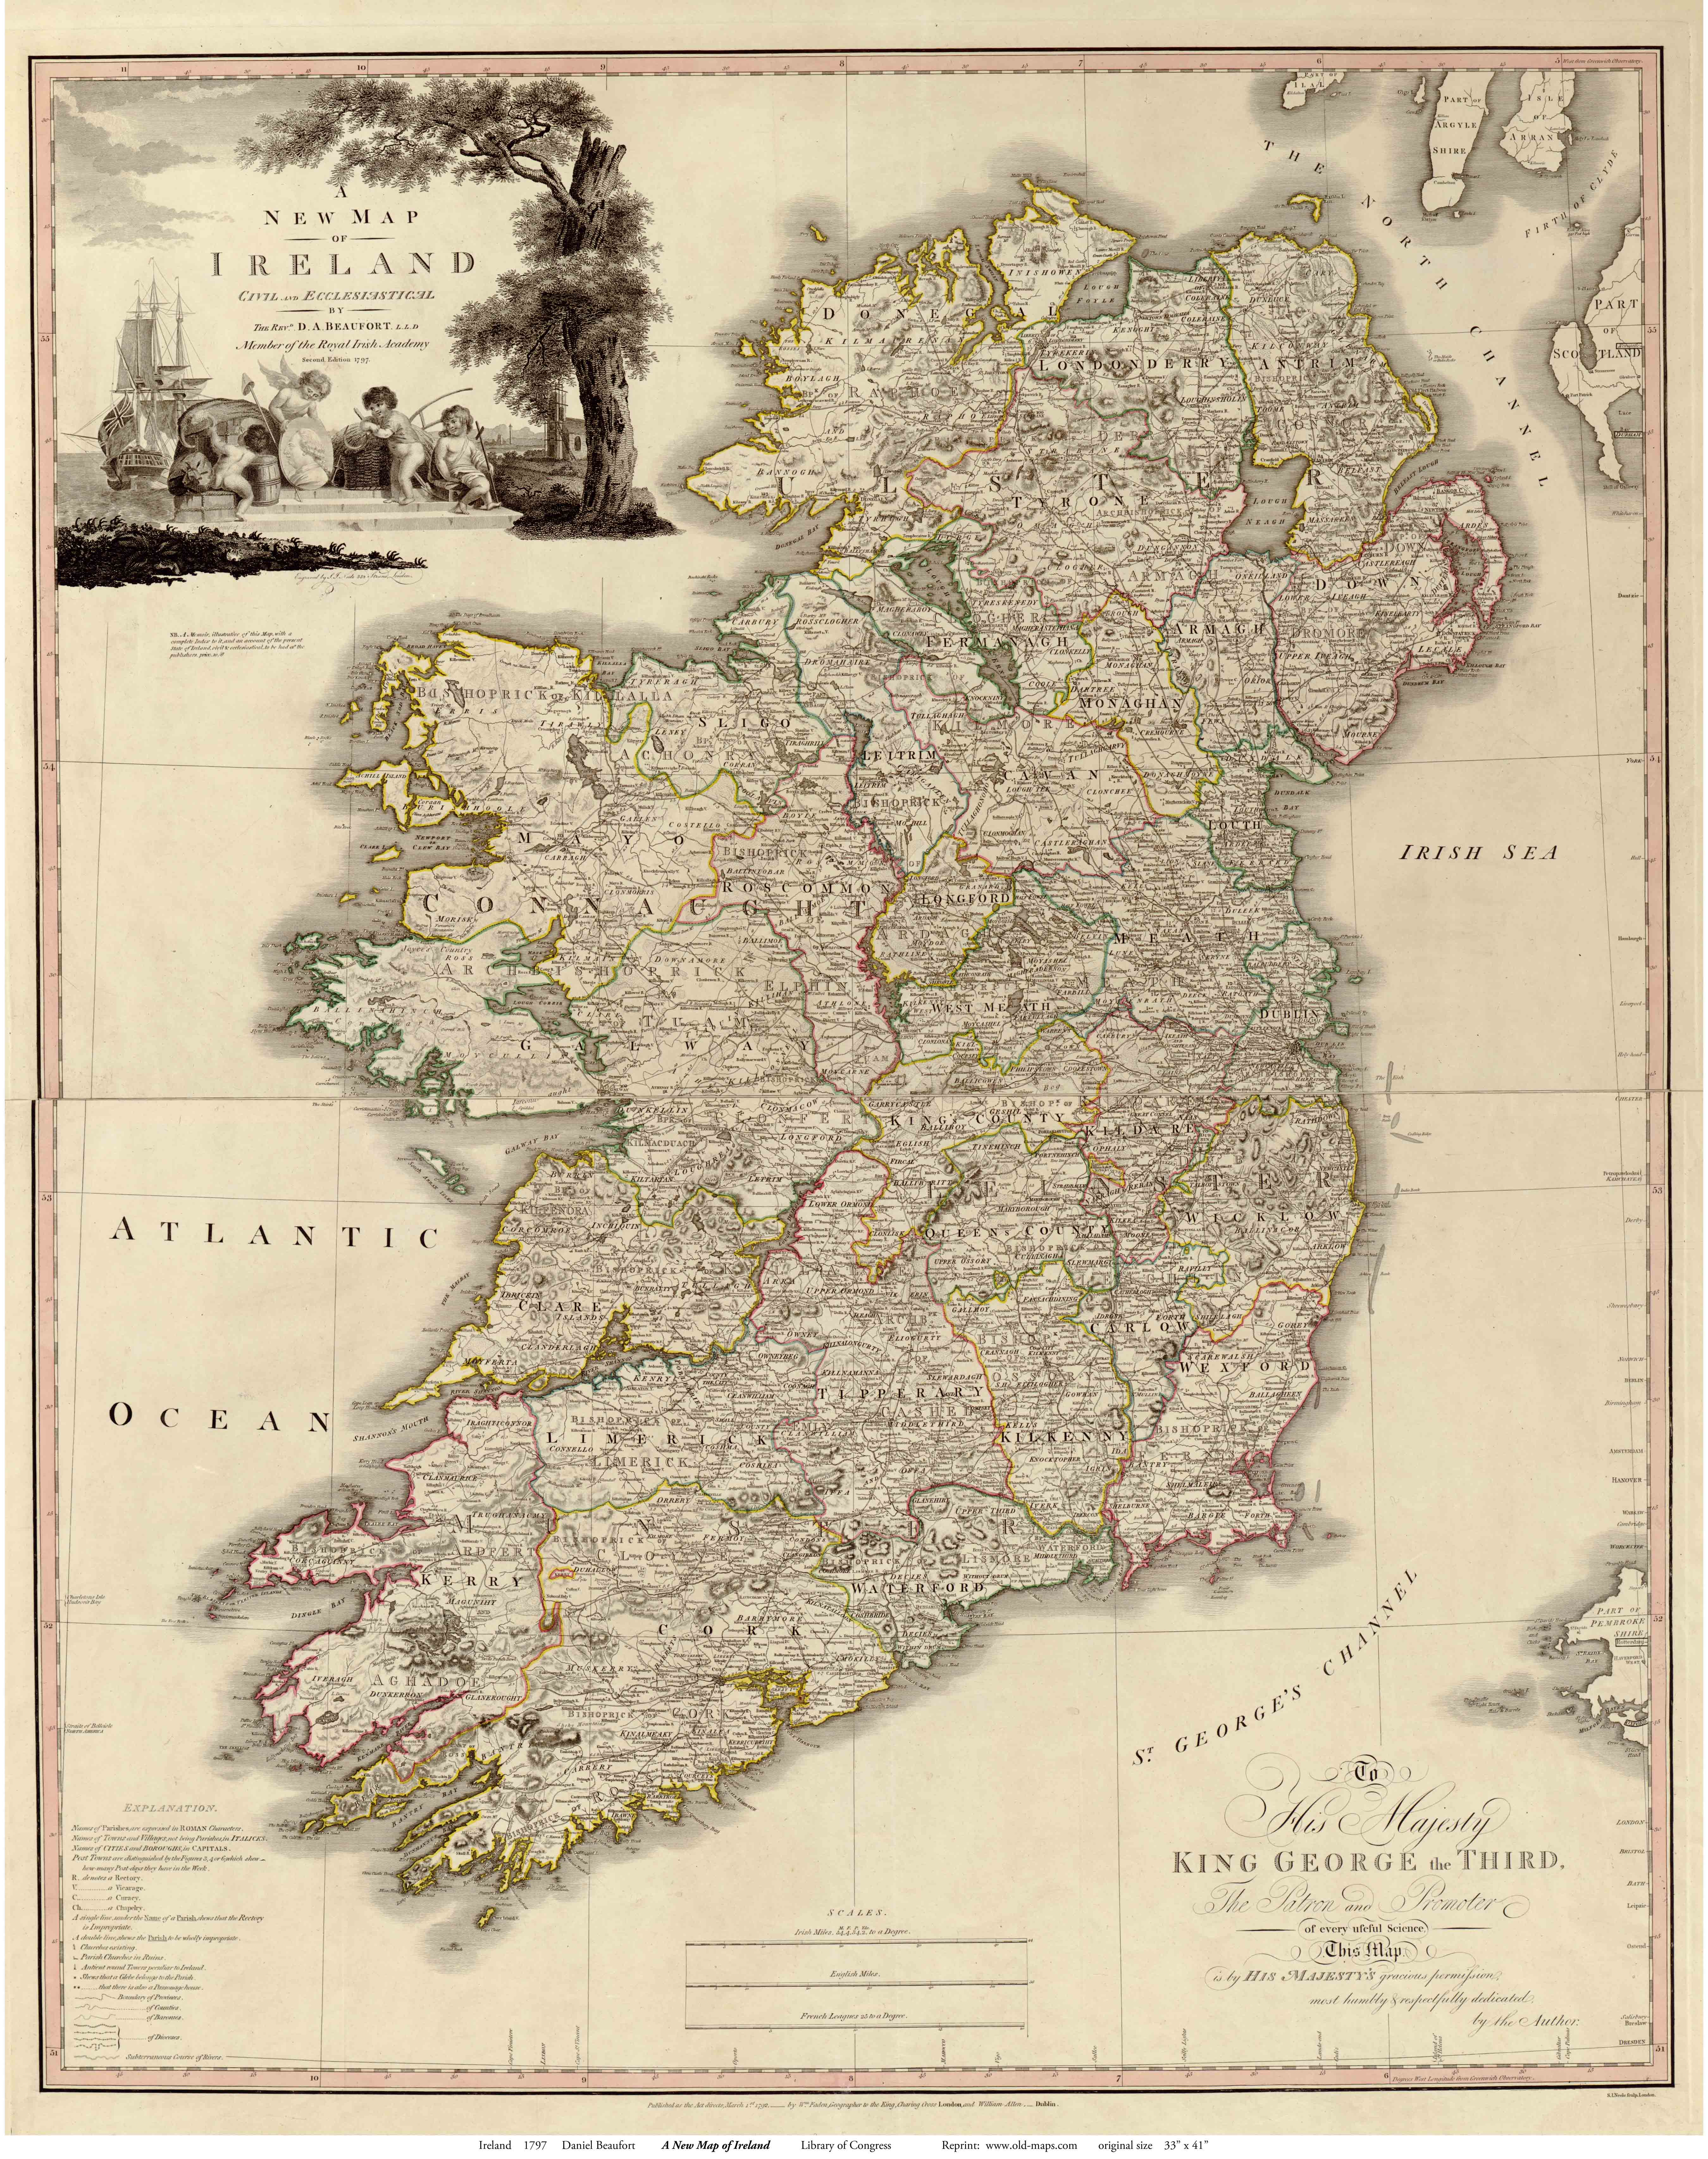 Ireland Beaufort Old Map Reprint OLD MAPS - Antique looking maps